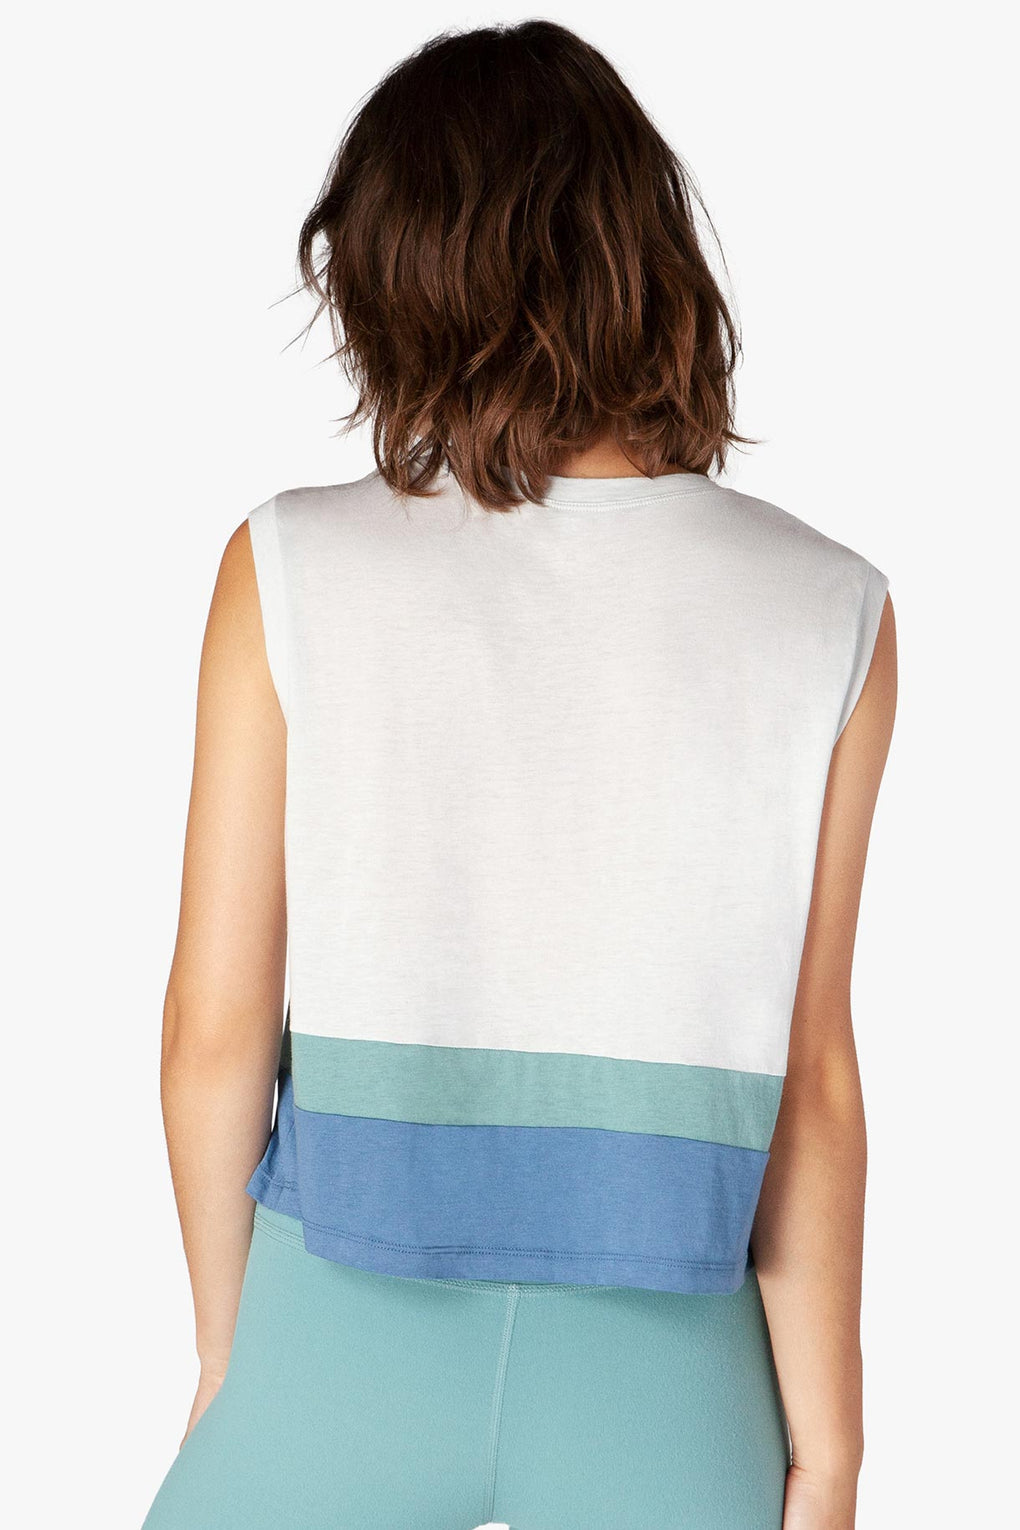 Vintage Pima Panel Crop Tank - Kabana Shop